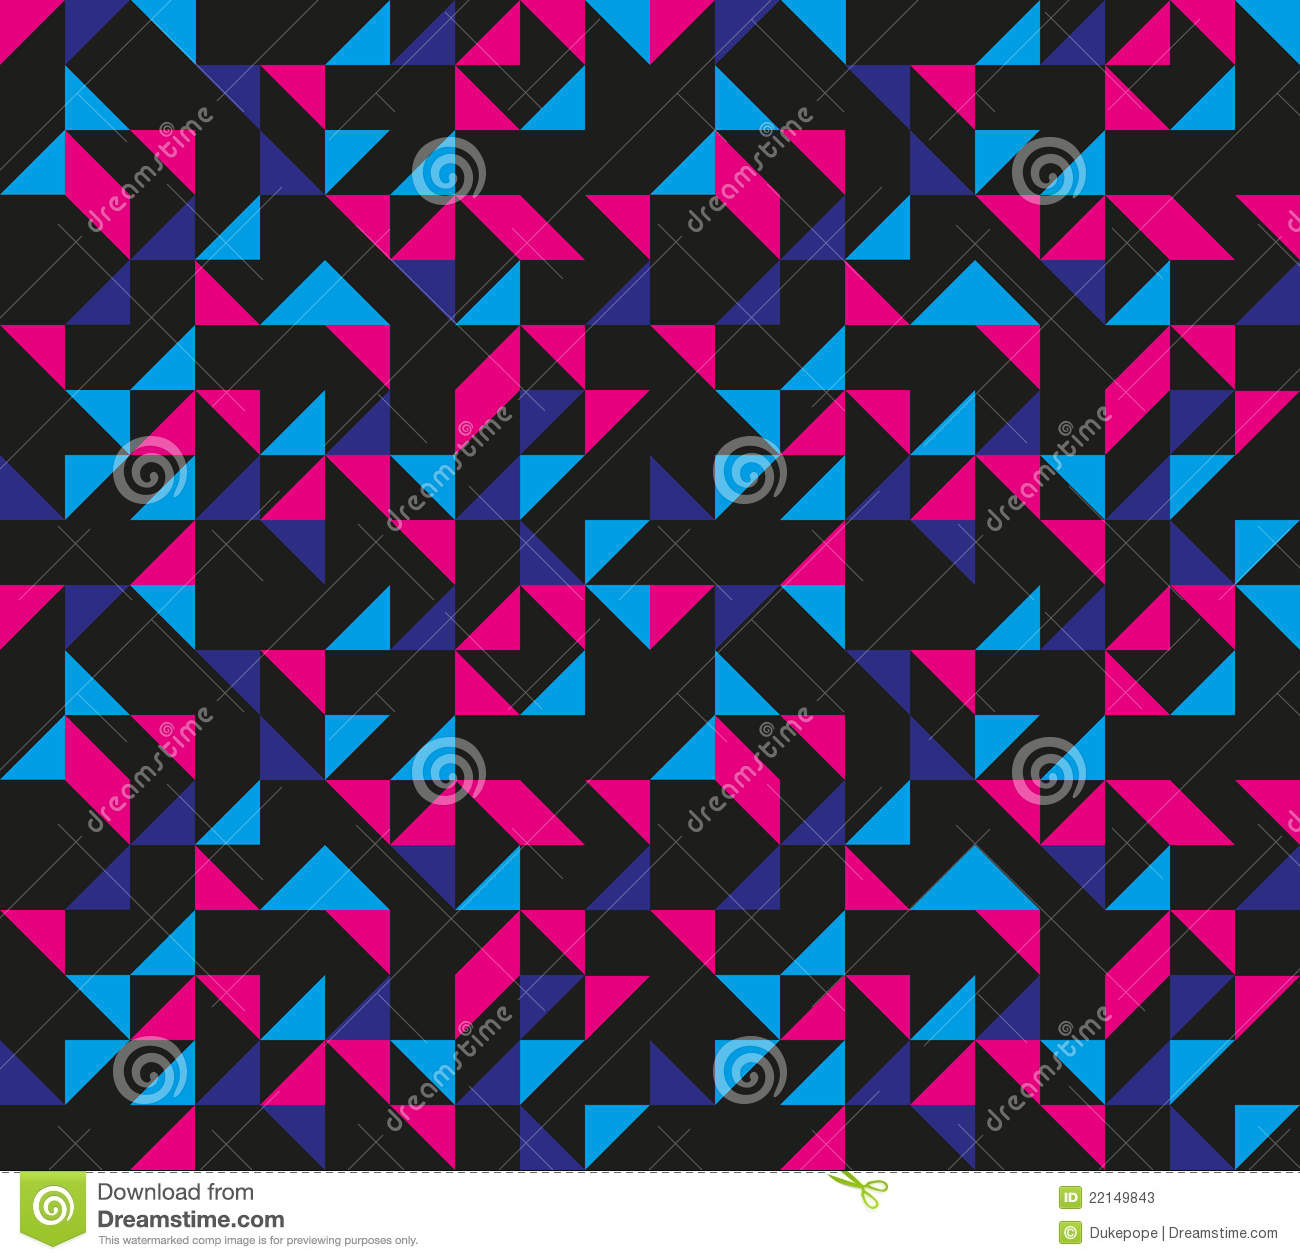 Similar Galleries 80s Design Background 80s Patterns 80s Graphic 1300x1260